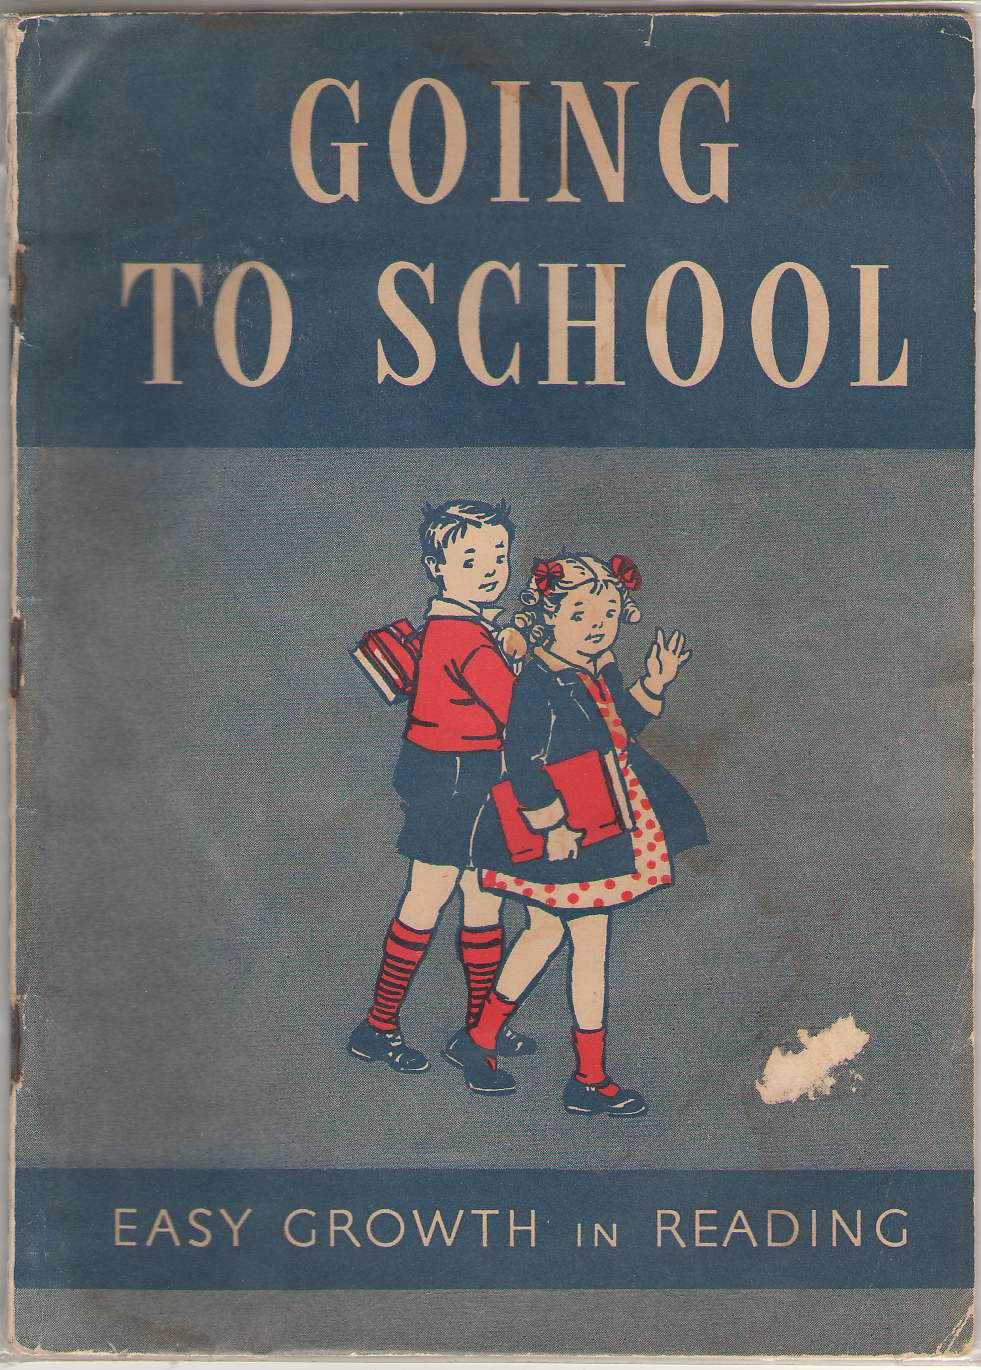 Going To School Easy Growth in Reading, Pre-Primer Level Three, Hildreth, Gertrude, Et Al